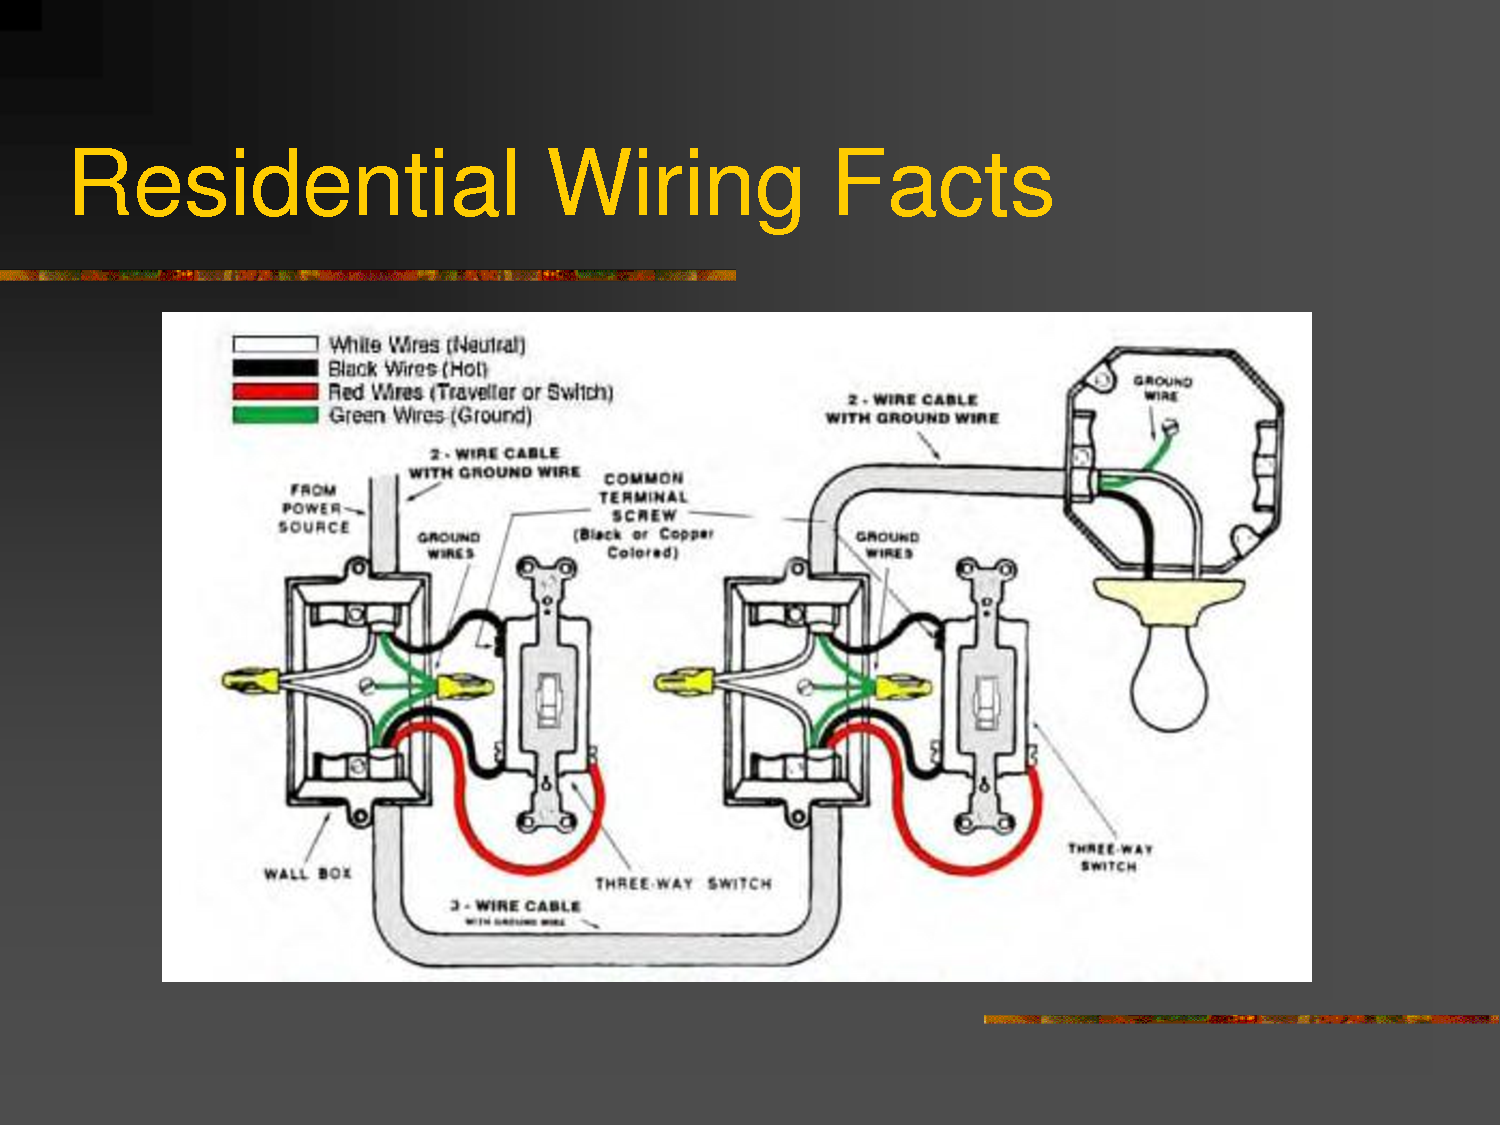 hight resolution of 4 best images of residential wiring diagrams house electrical residential home wiring diagrams residential electrical wiring drawing